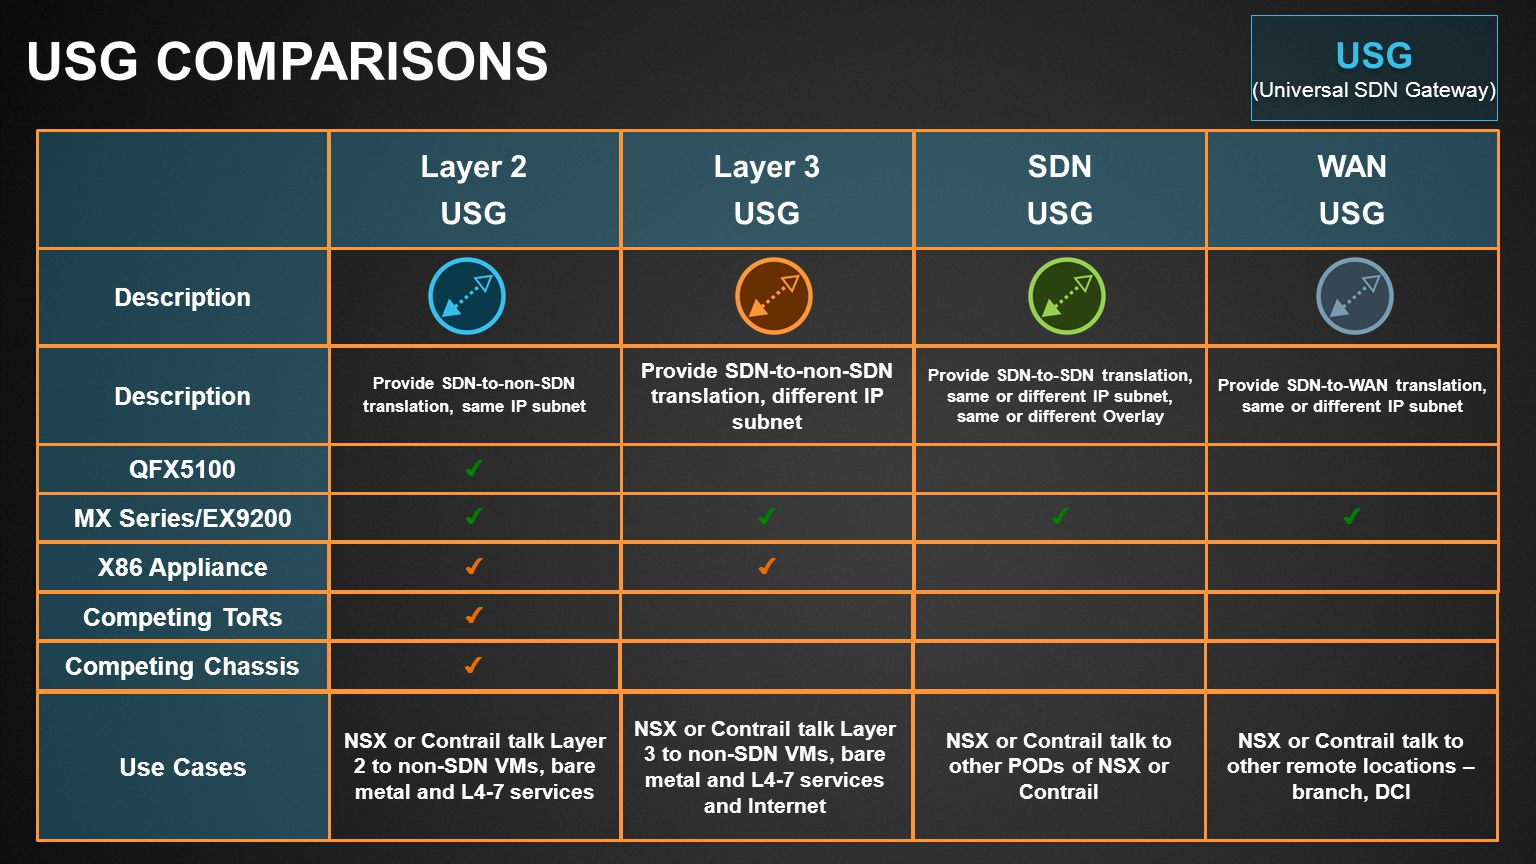 USG Comparisons USG Layer 2 USG Layer 3 SDN WAN Description QFX5100